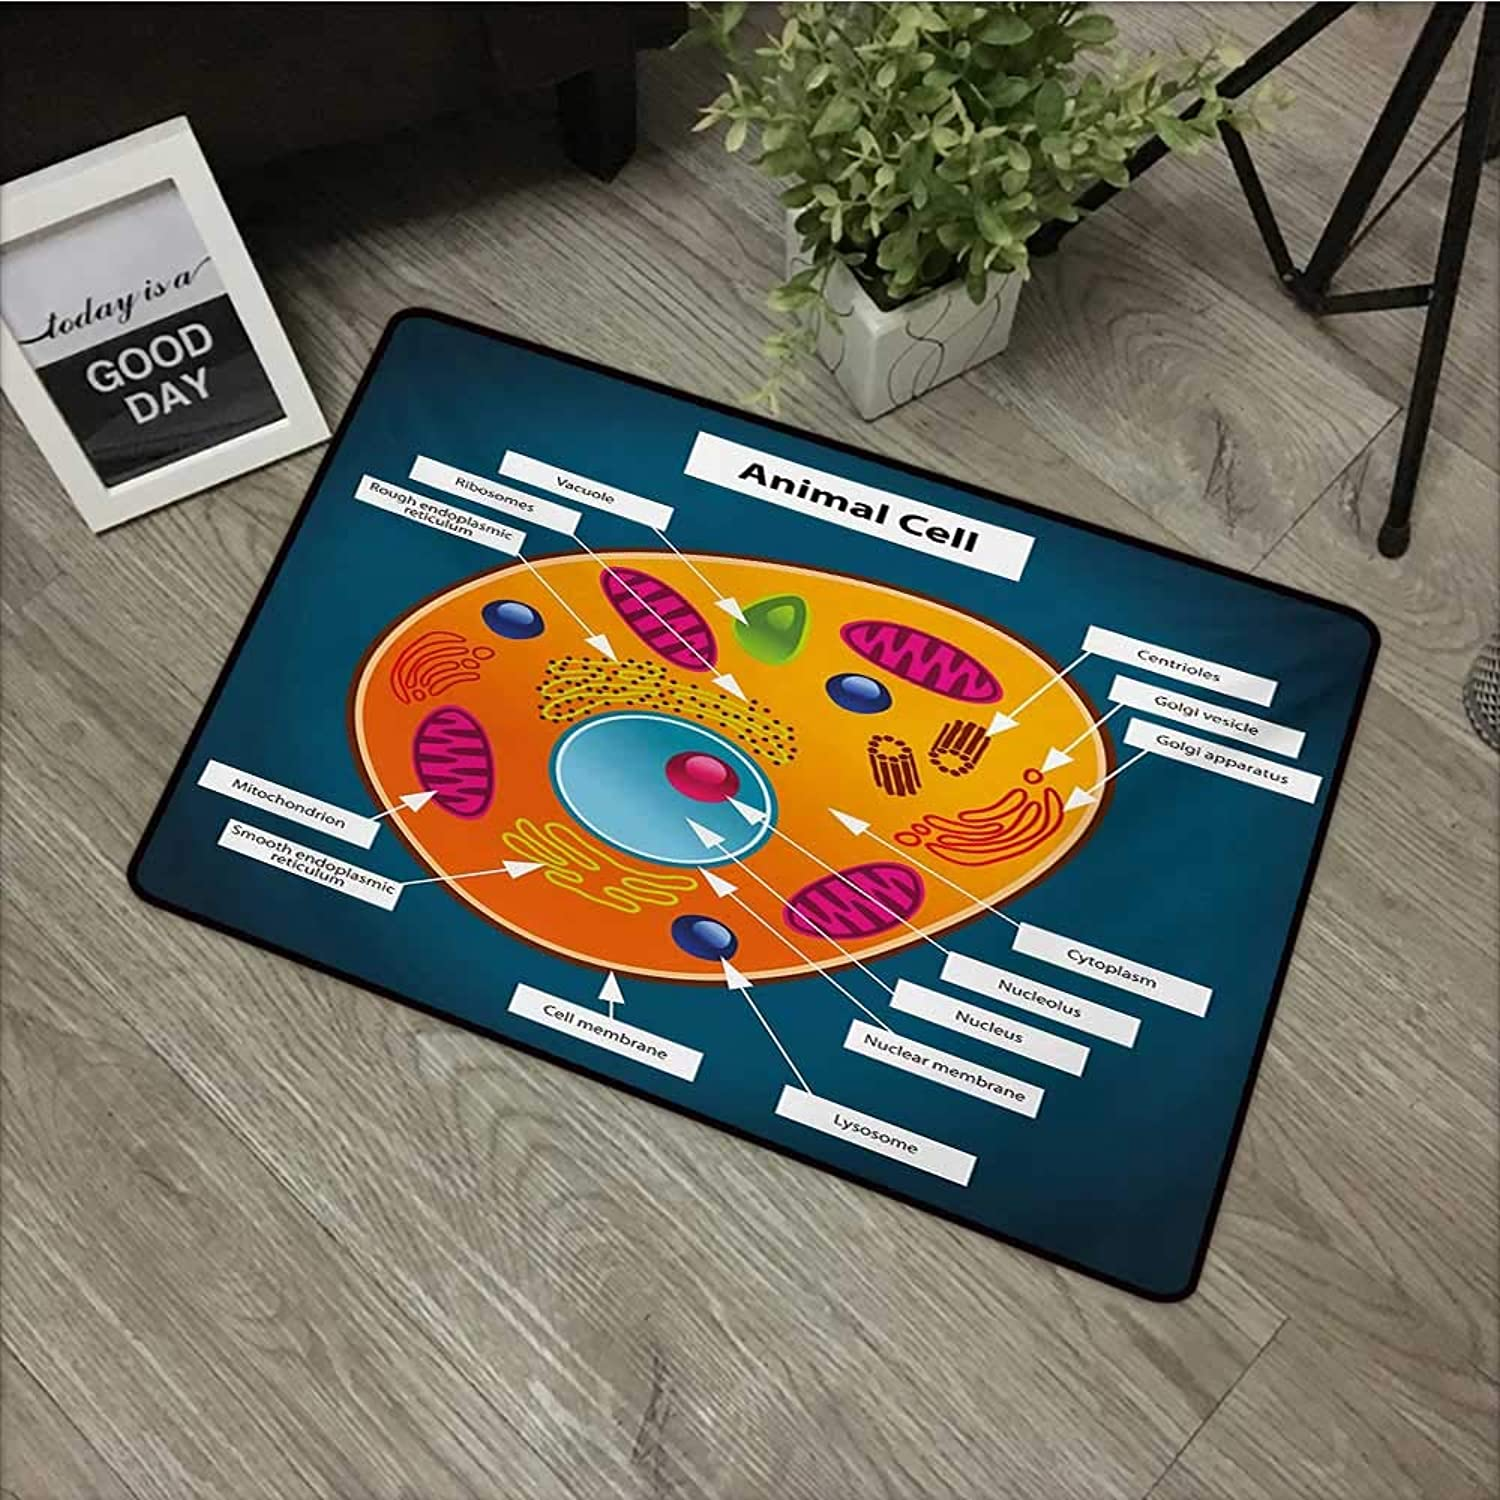 Interior mat W31 x L47 INCH Educational,Science at School Cell of an Animal colorful Display Medical Studies Nucleus,Multicolor Non-Slip, with Non-Slip Backing,Non-Slip Door Mat Carpet